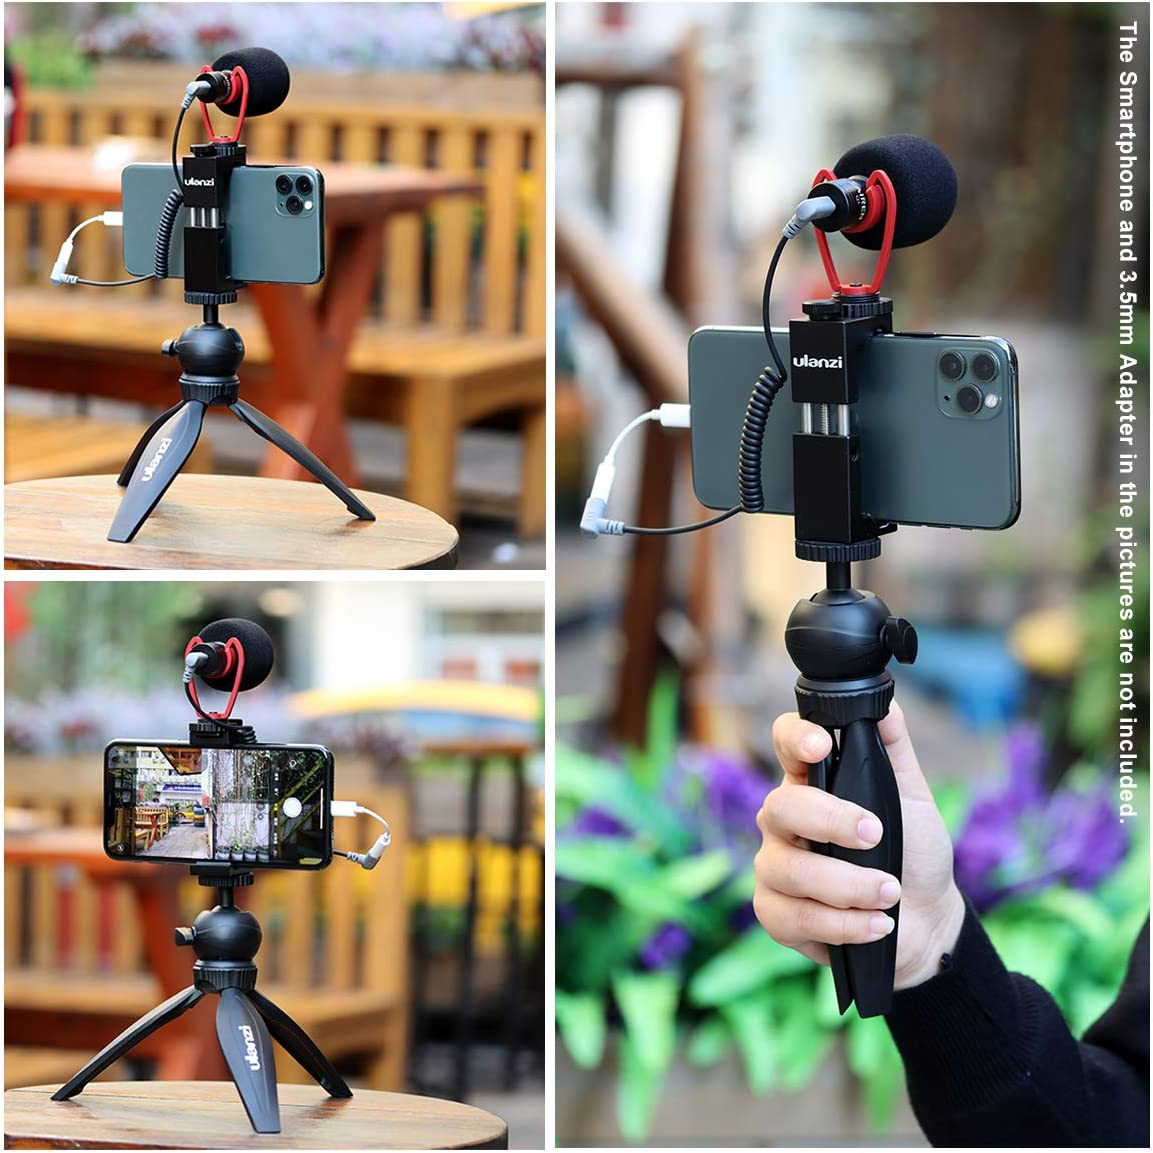 Universal Phone Tripod Mount Vlogging Setup YouTube Equipment for iPhone 11 Pro Max XS 8 Samsung Google OnePlus ULANZI Smartphone Video Kit Shotgun Video Microphone Extension Pod Tripod